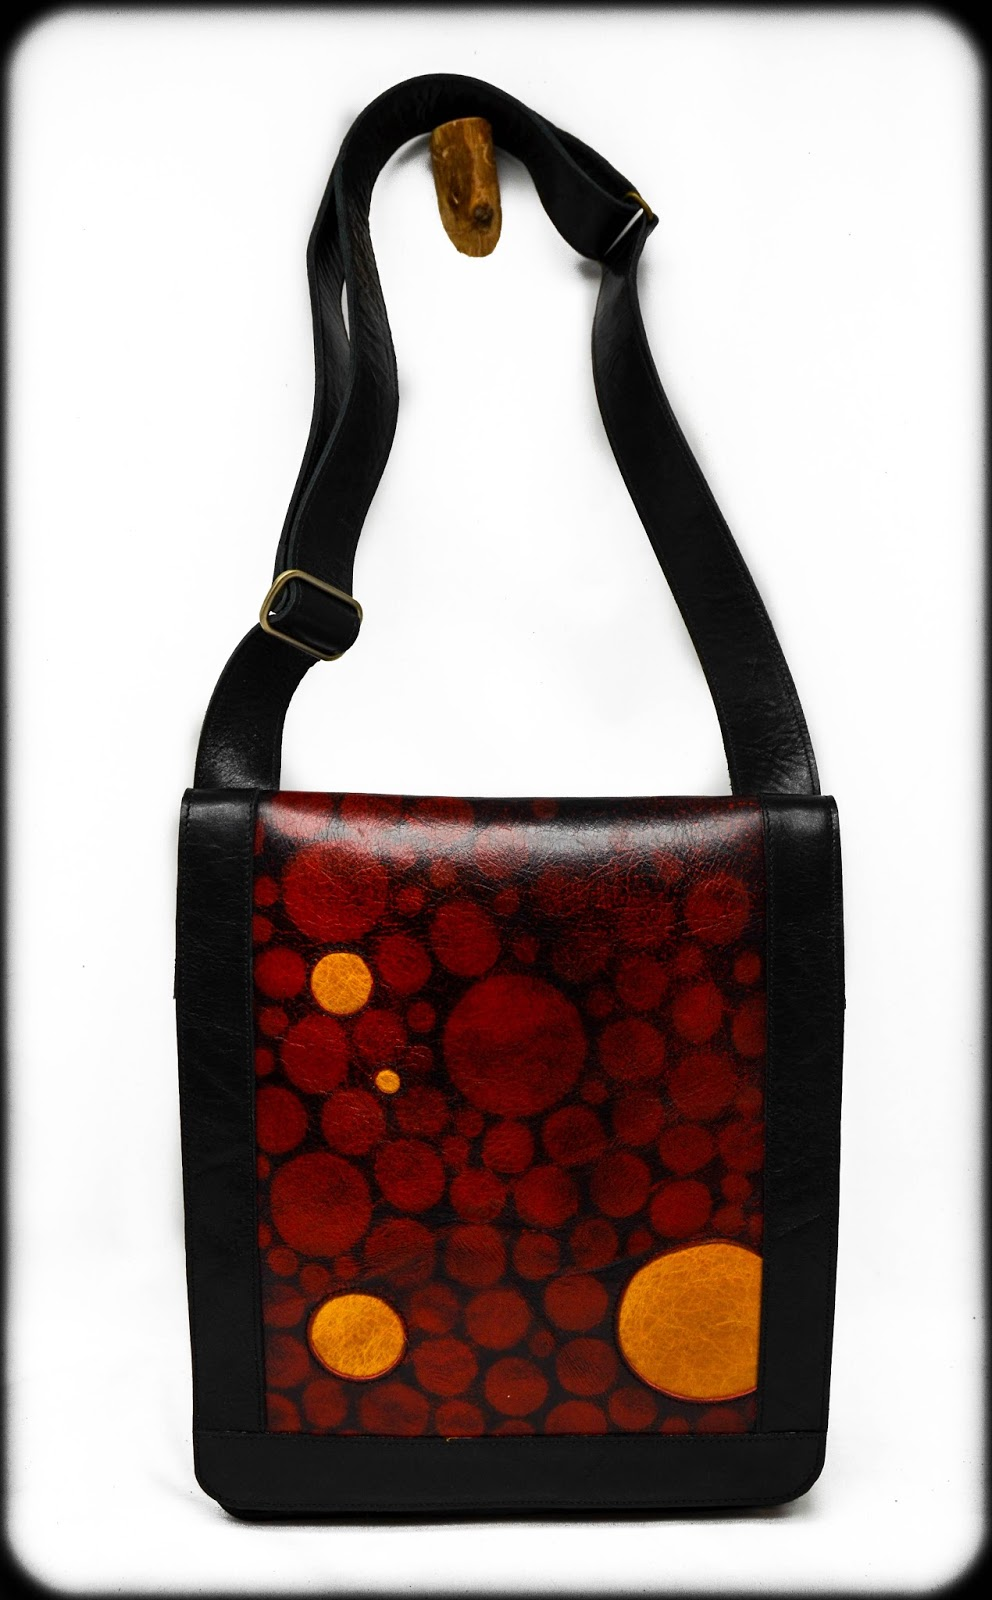 Chemical Wedding Handbags Black And Red Leather Shoulder Bag With Adjule Strap